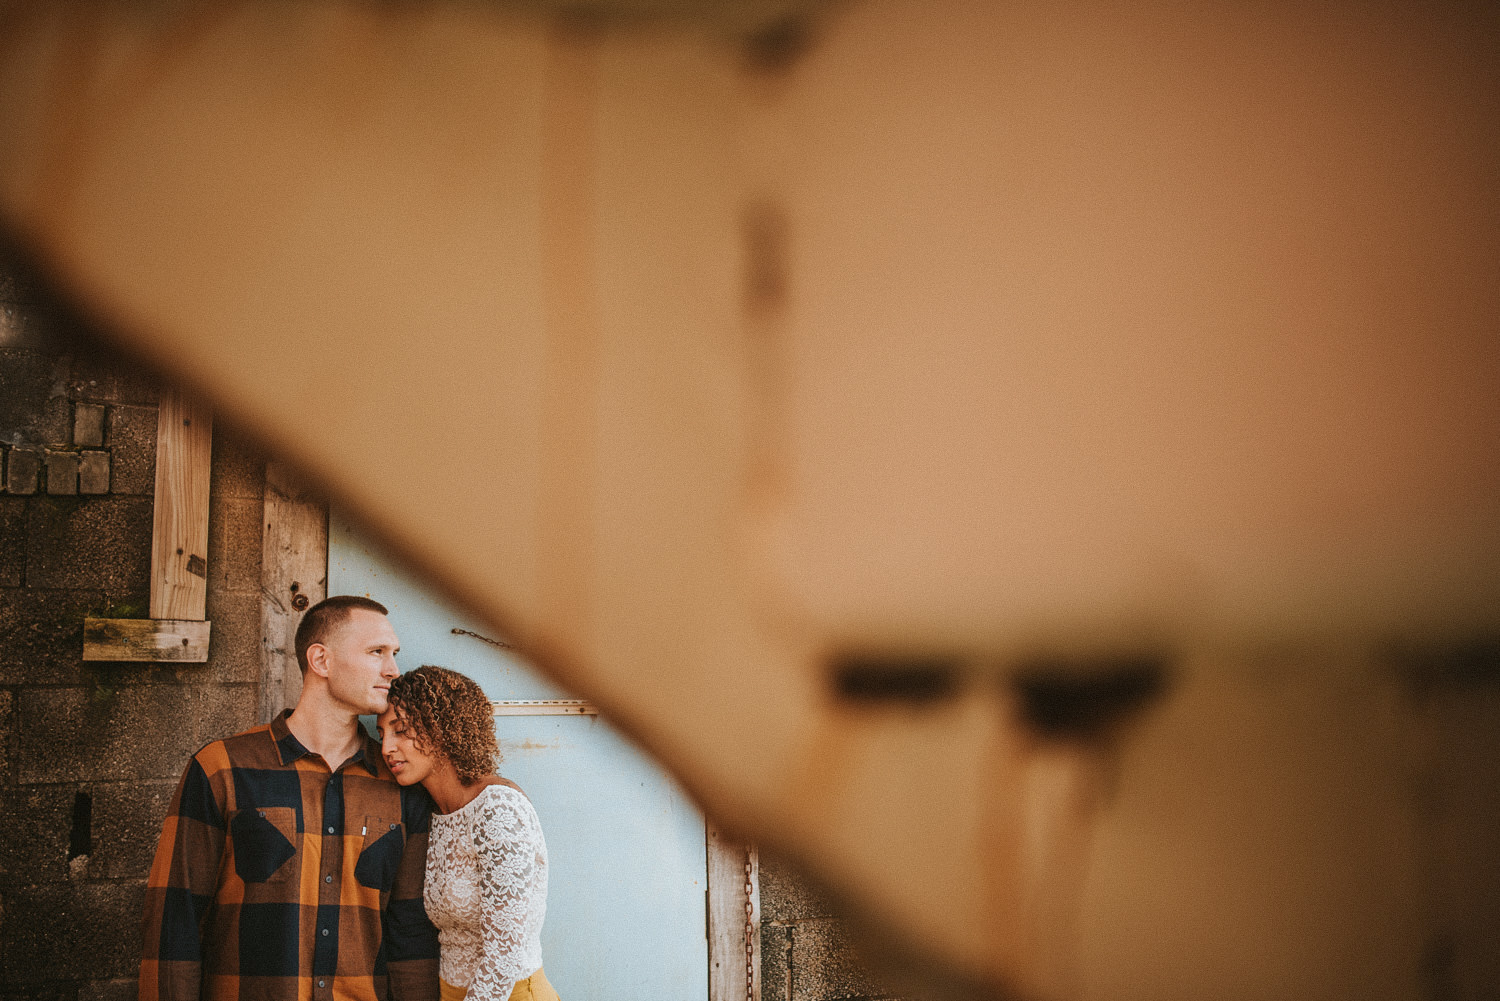 Dominique and Clay by Grand Rapids Michigan Photographer Ryan Inman - 11.jpg